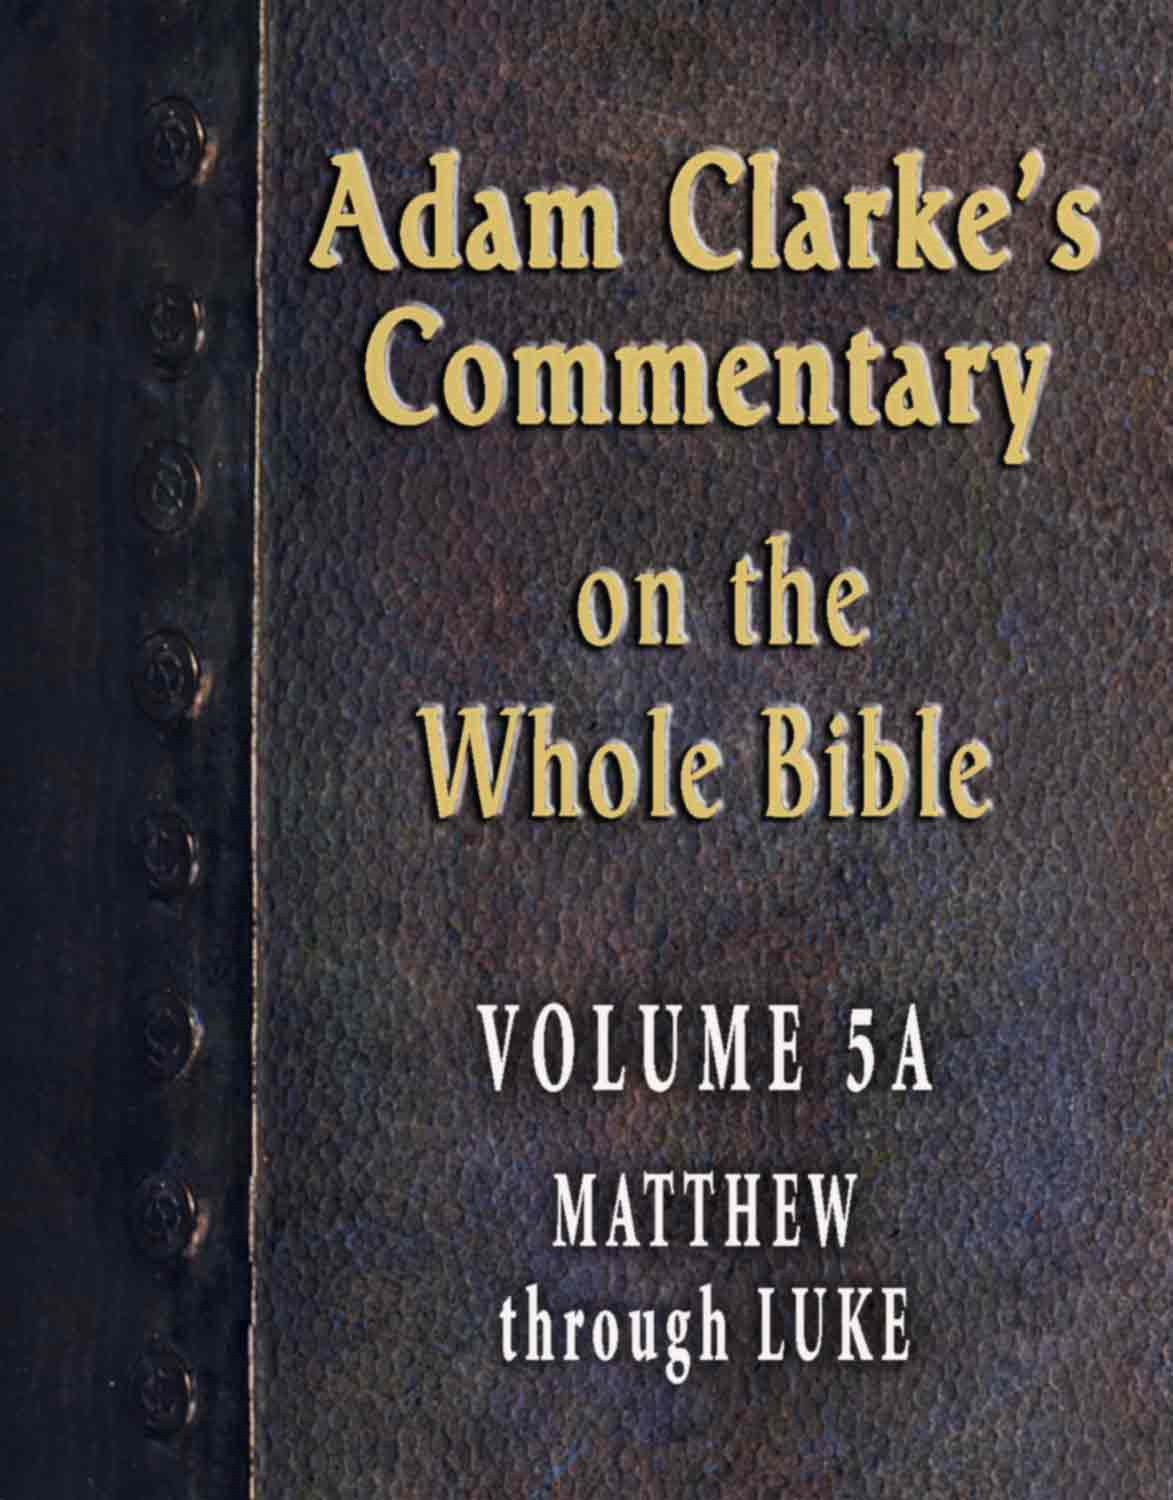 Adam Clarke's Commentary on the Whole Bible-Volume 5A-Matthew through Luke